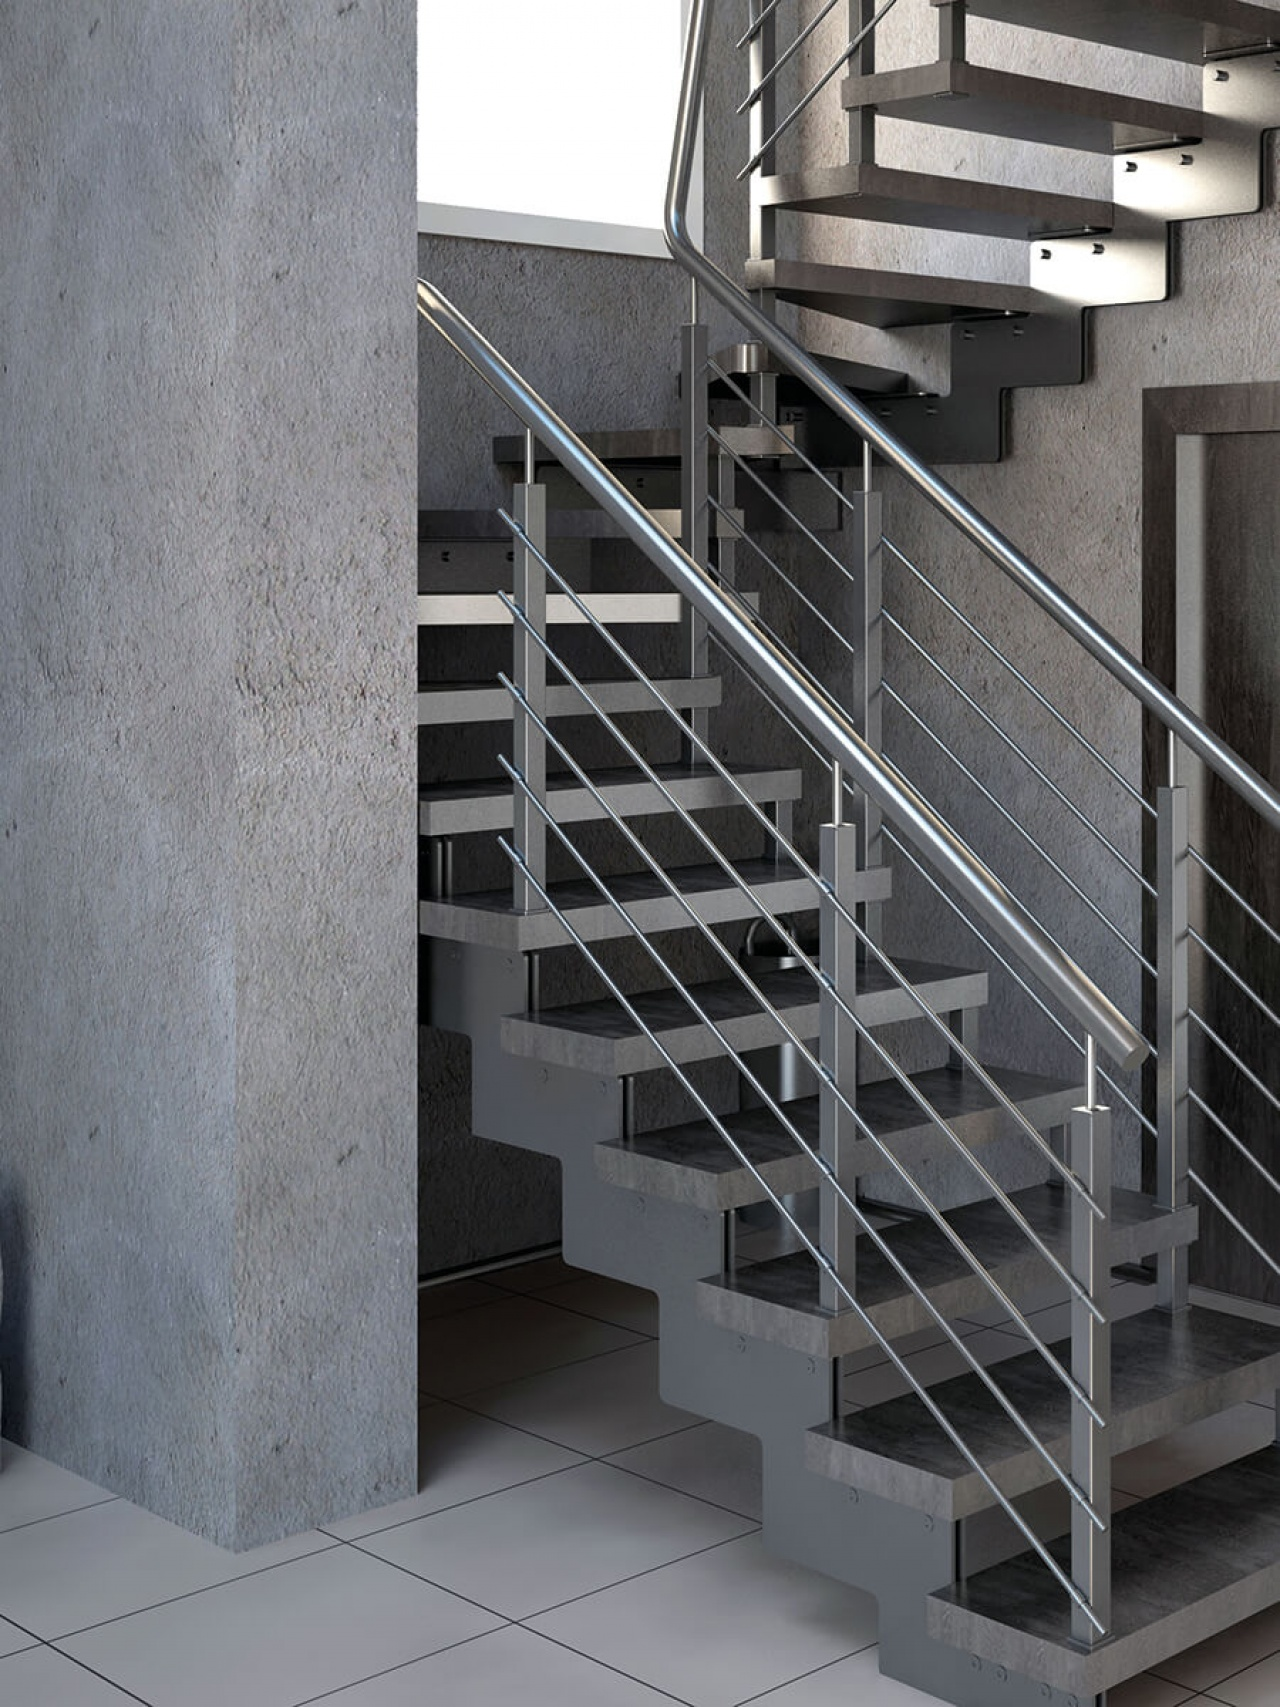 Urban concrete look for the stairwell